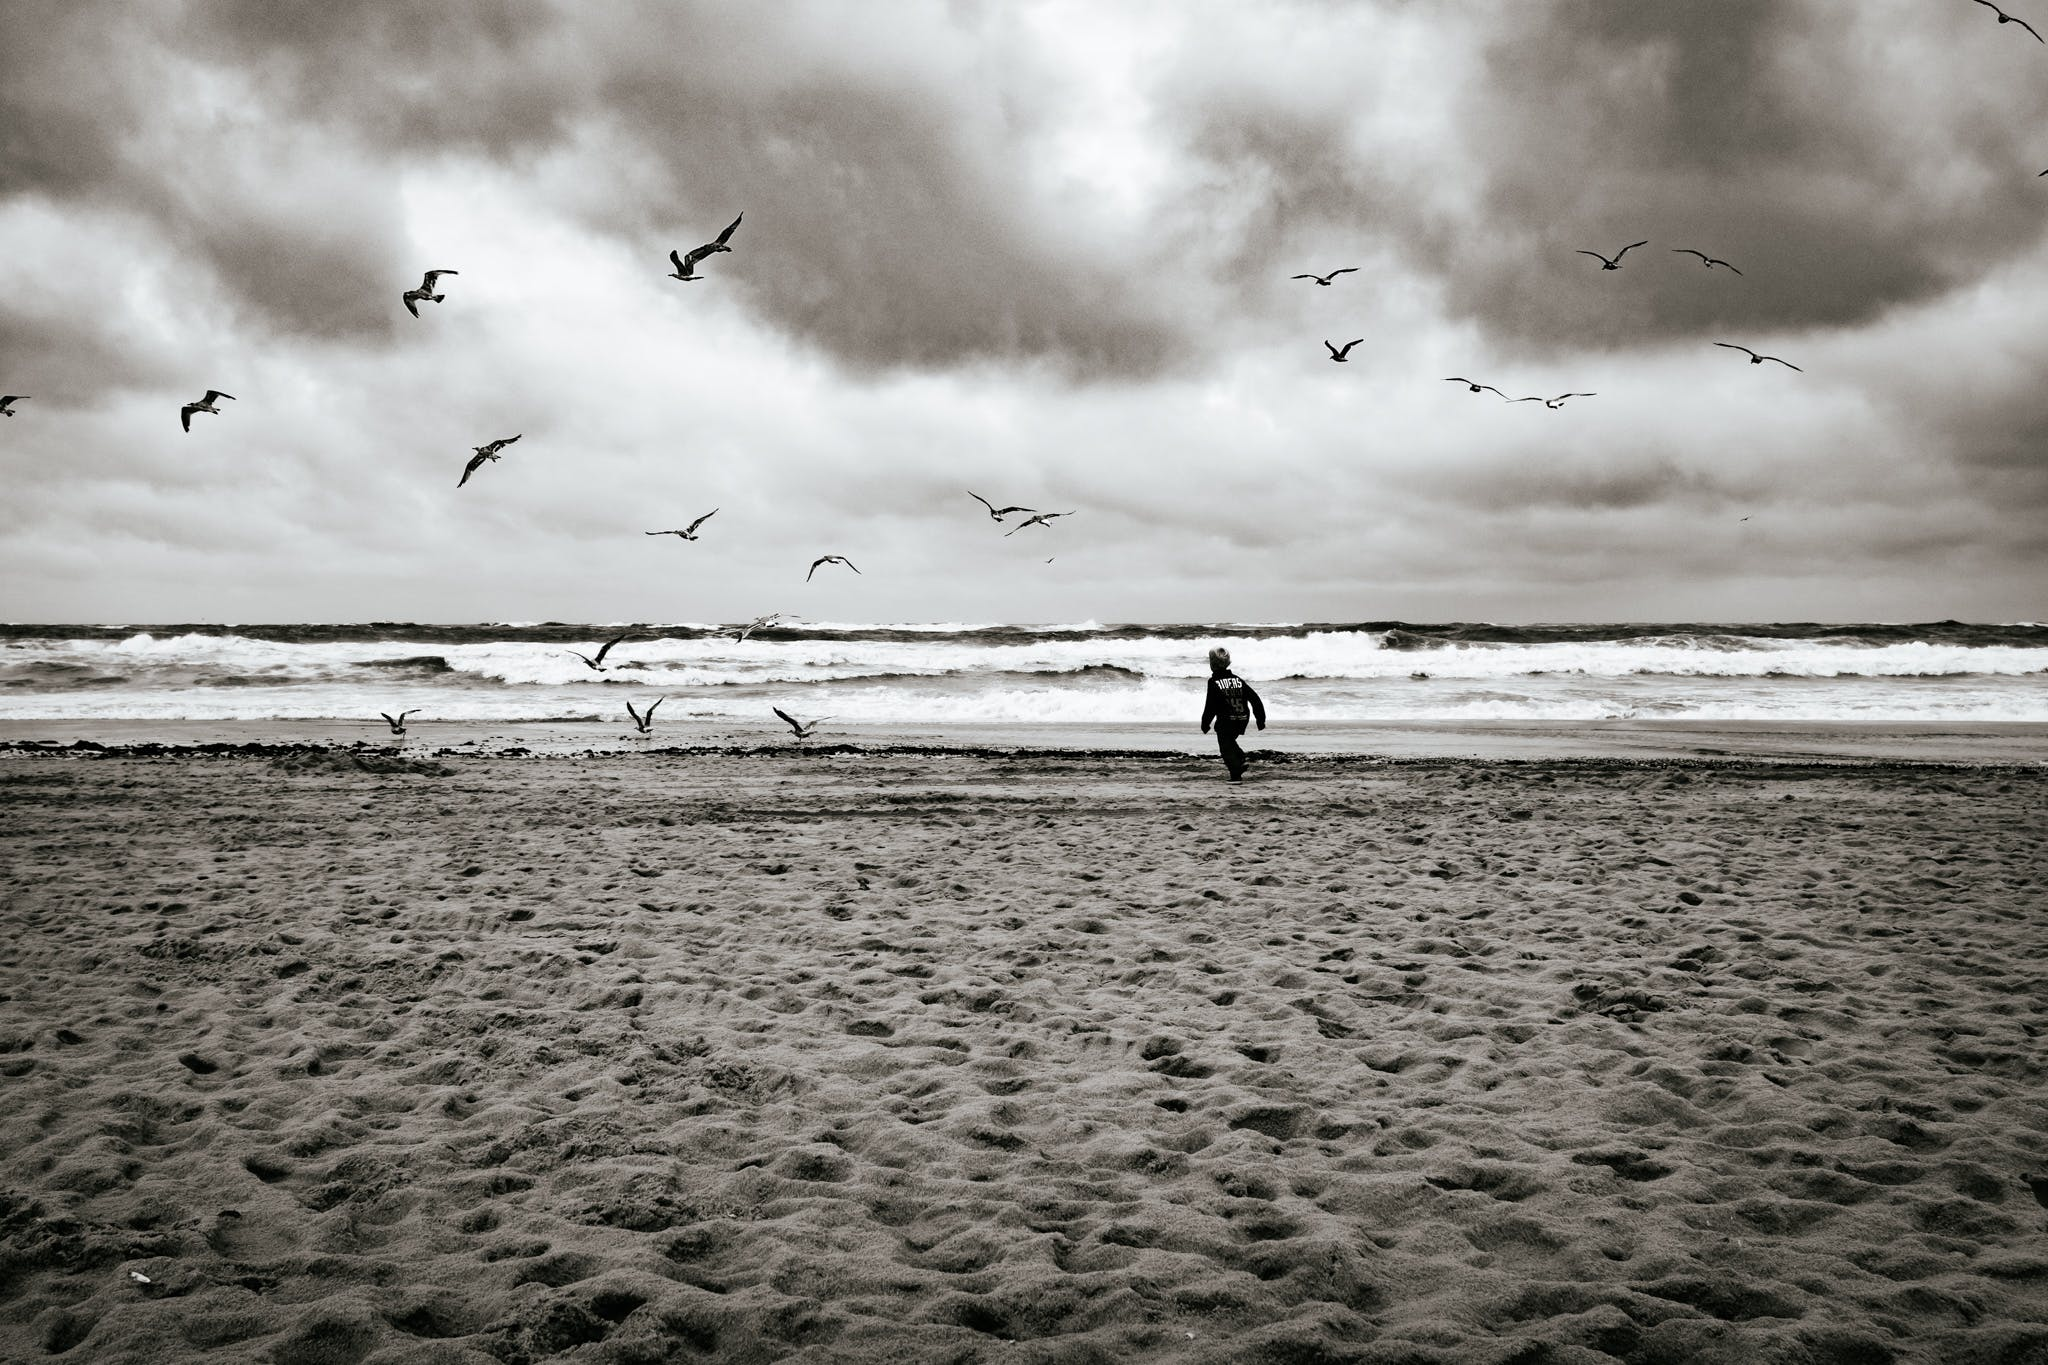 Grayscale Photography of Boy Running Near Sea